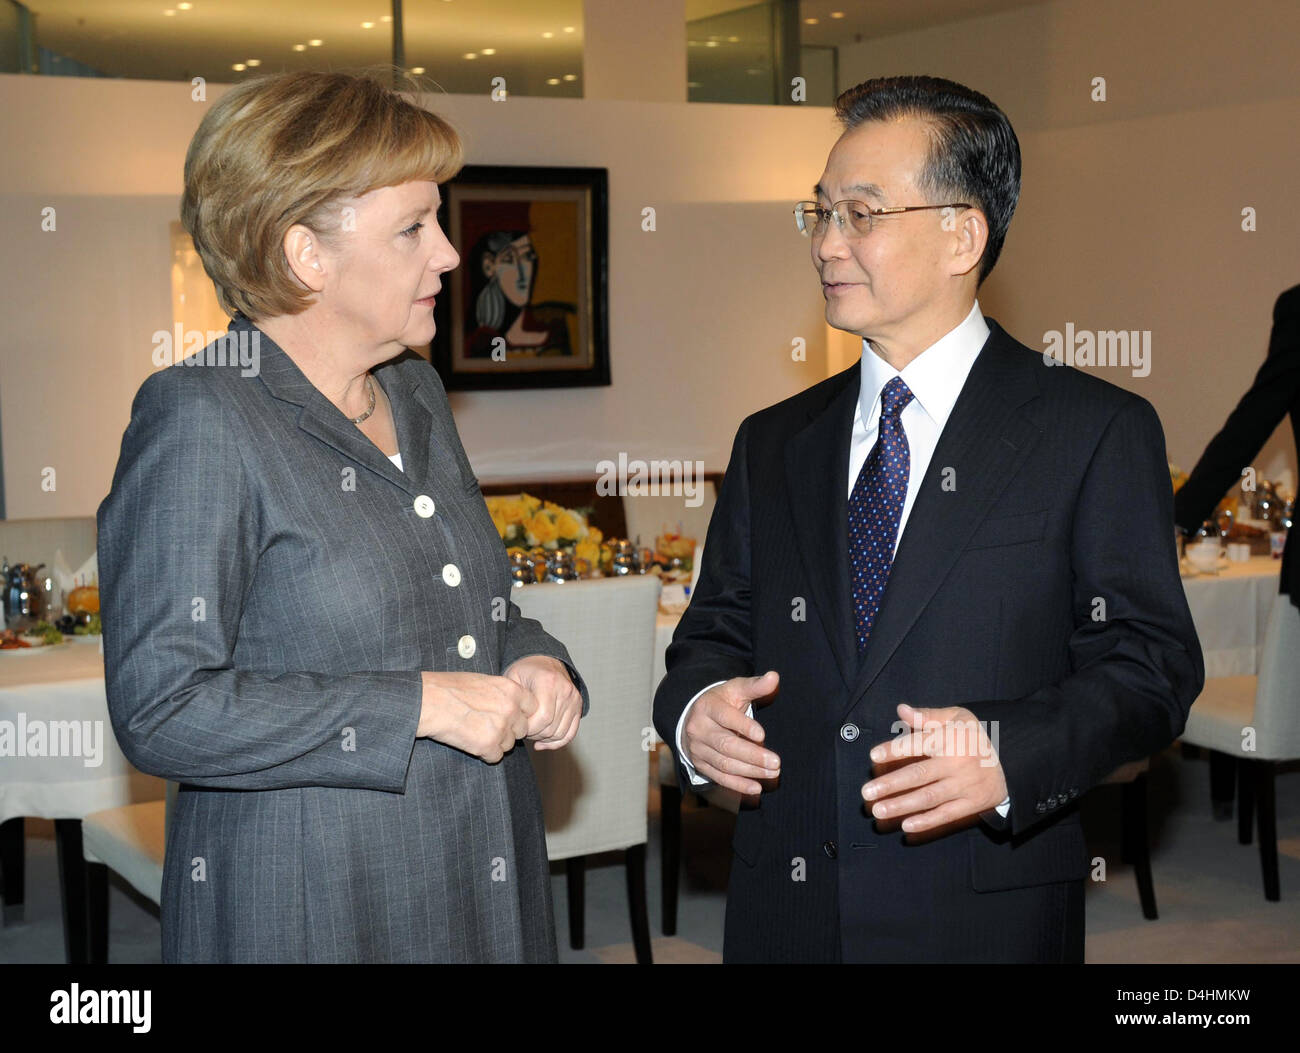 German Chancellor Angela Merkel talks with Chinese Prime Minister Wen Jiabao during a working breakfast in Berlin, - Stock Image